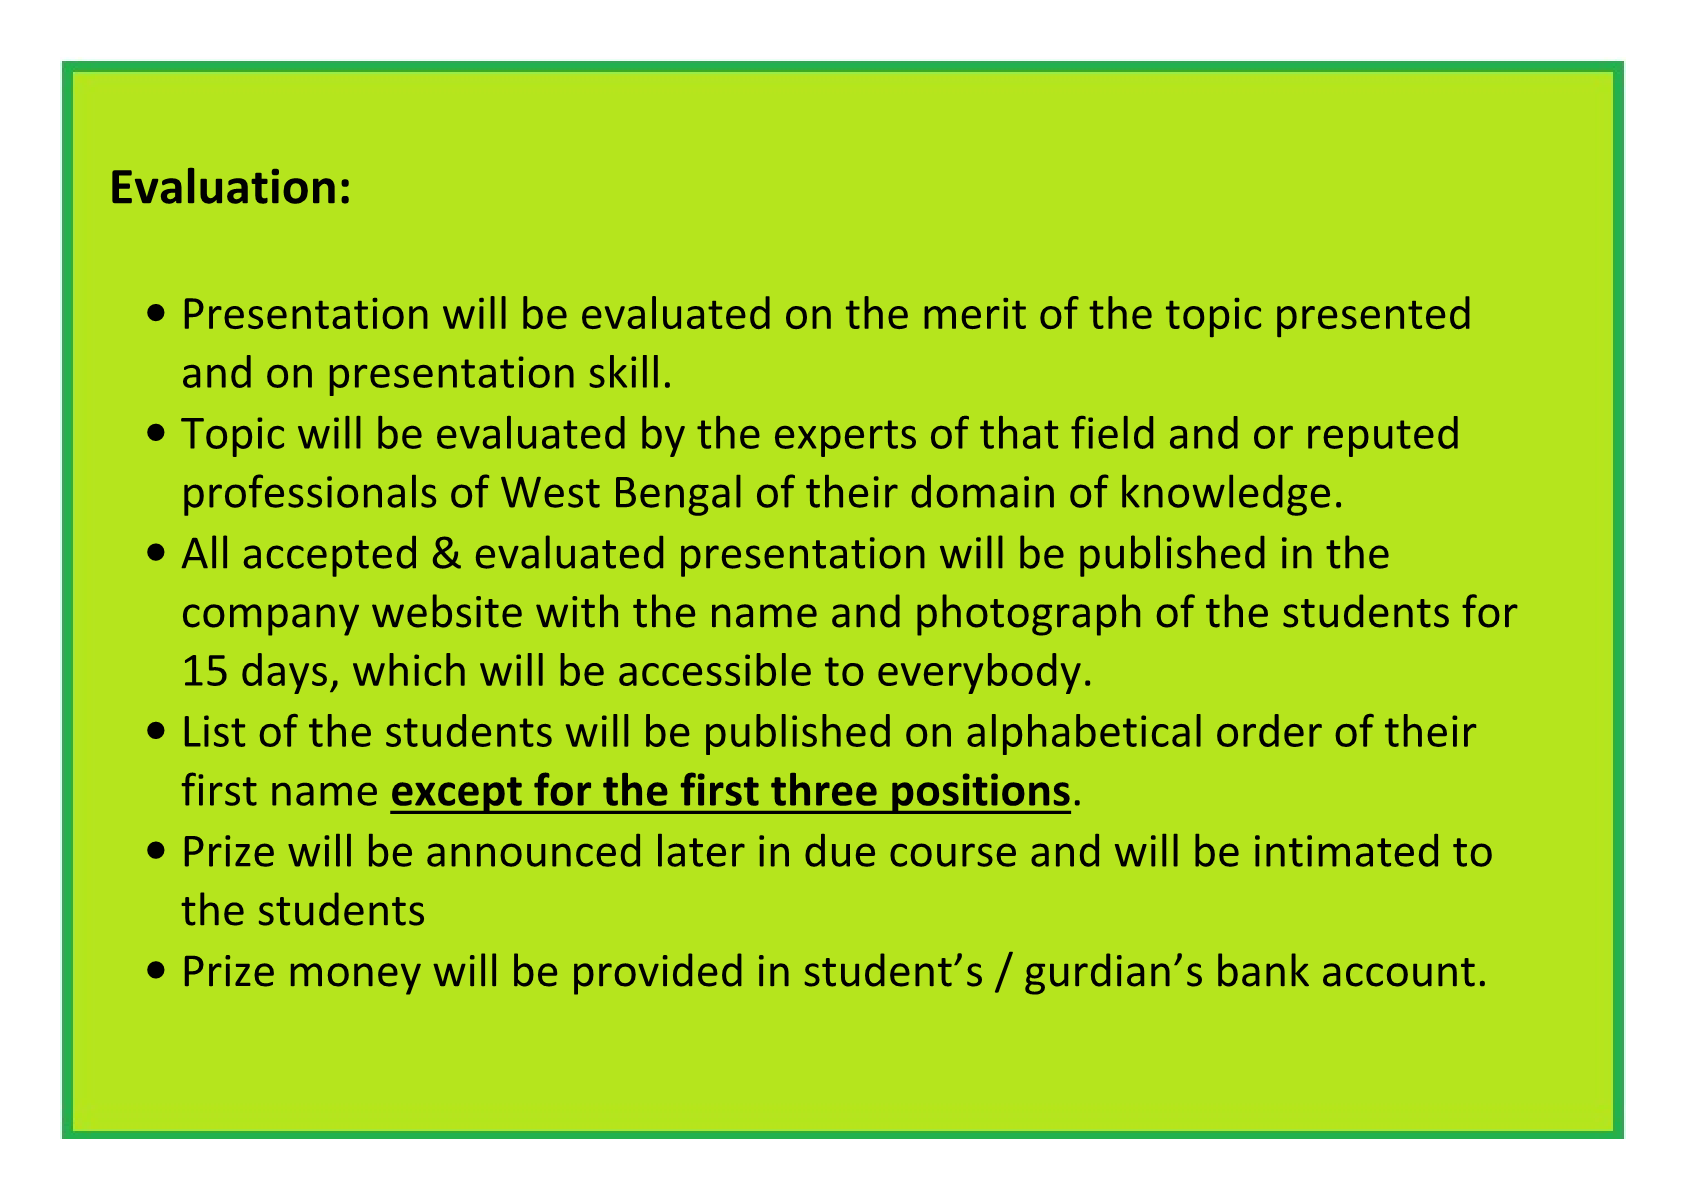 Evaluation of Presentation